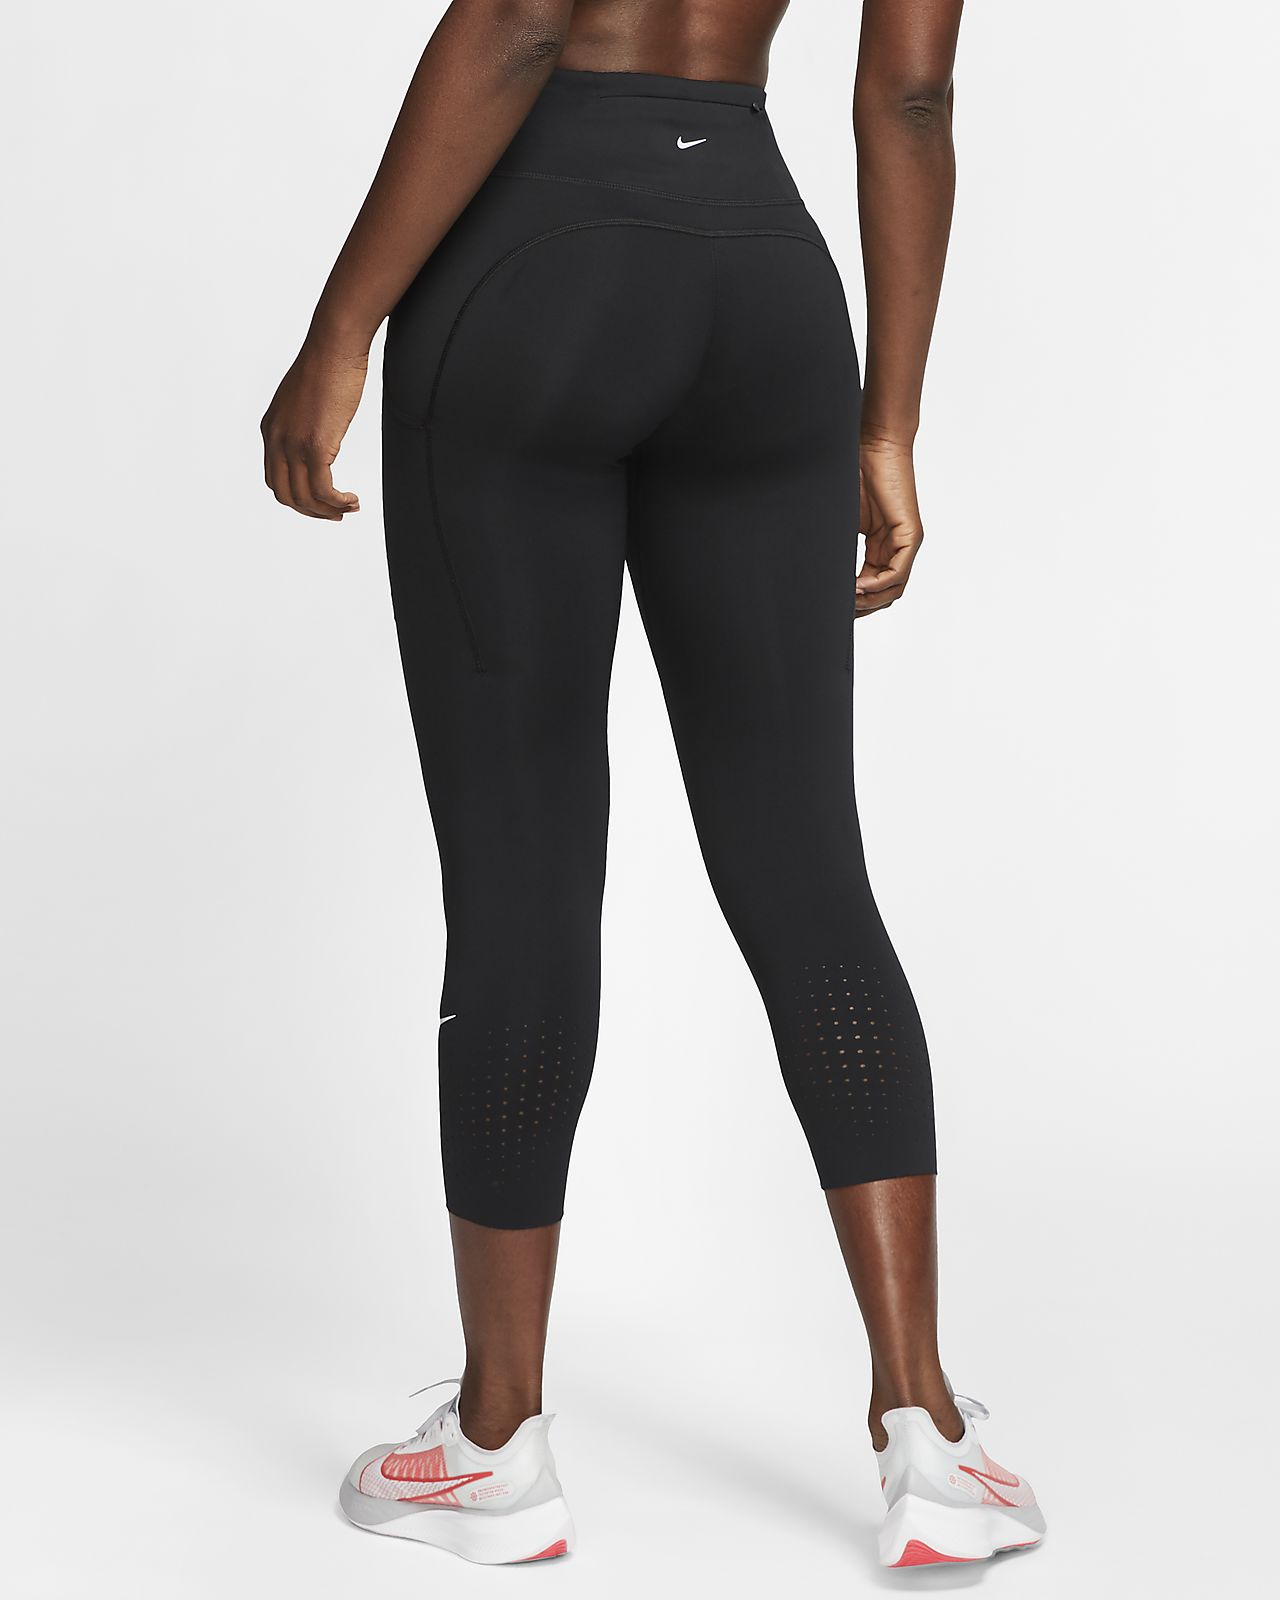 Epic Lux Crop Lauf Tights für Damen in 2020 | Laufende